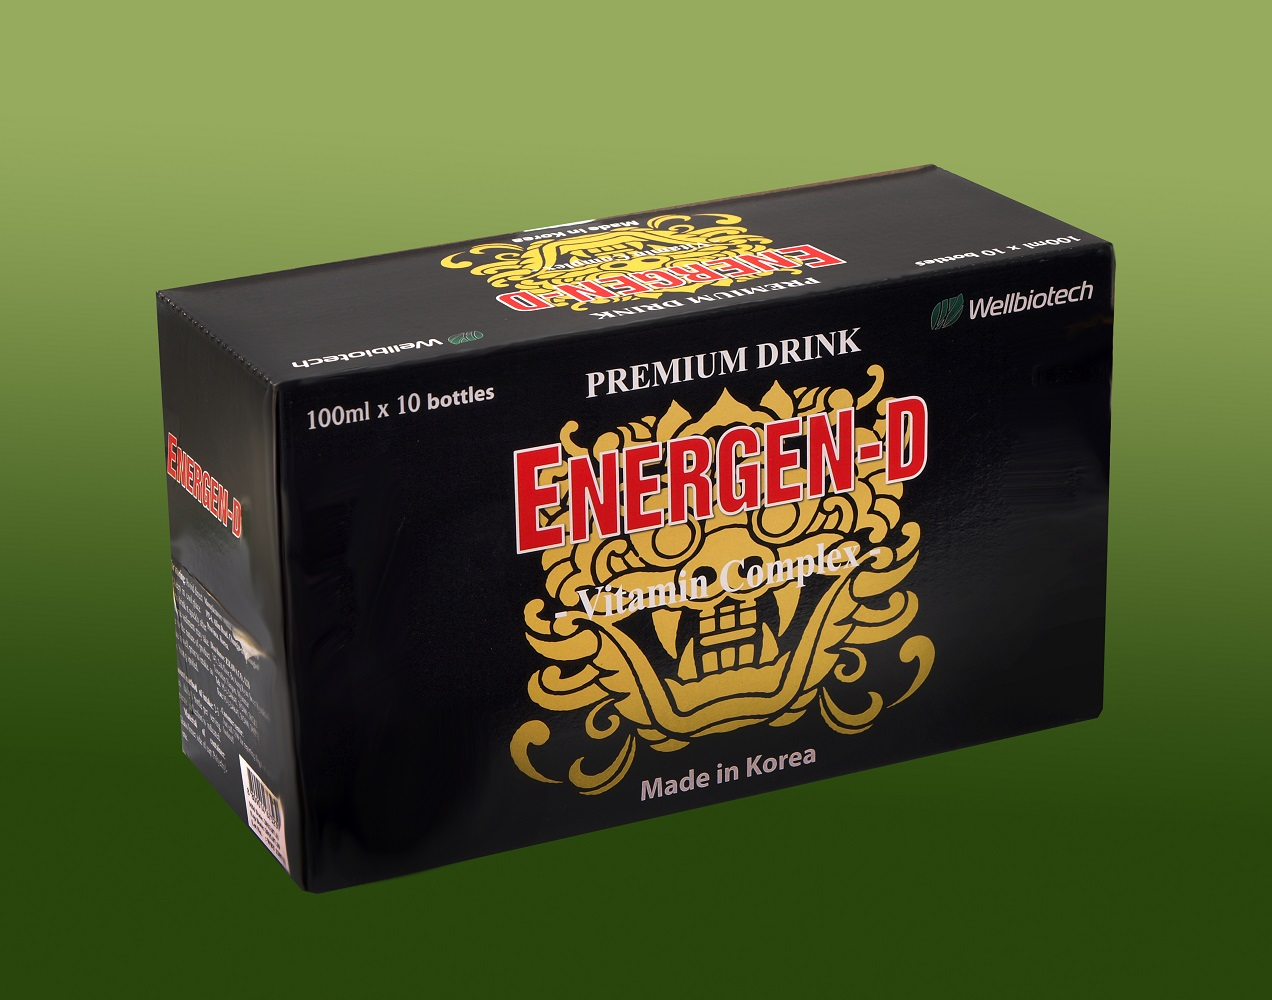 Energen-D Energy Drink good for Anti-fatigue and Nourishing